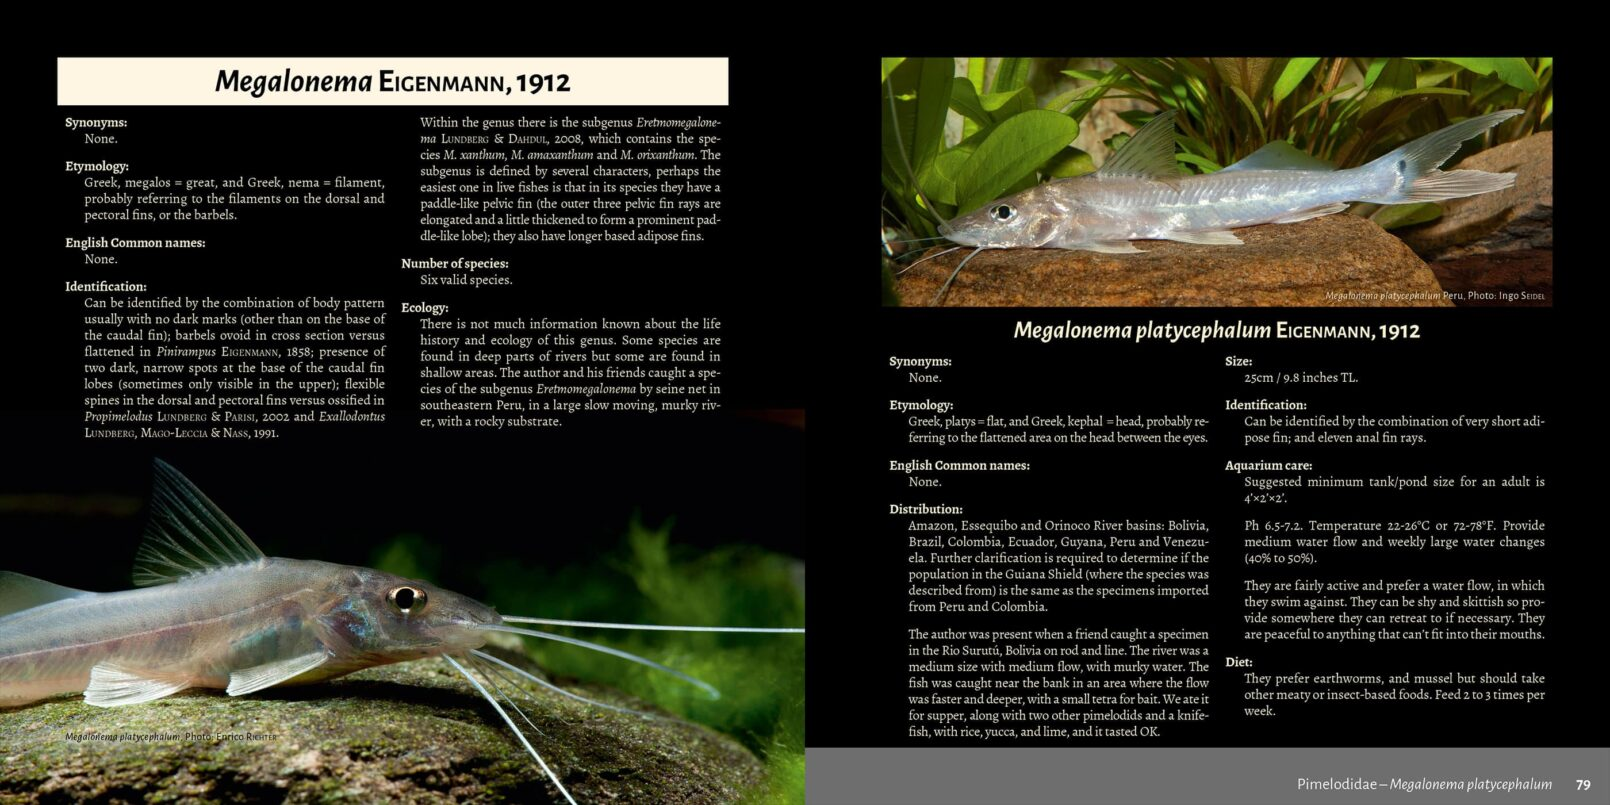 Pims - Pimelodidae,  Heptapteridae and  Pseudopimelodidae Catfishes / Steven Grant pages 78, 79